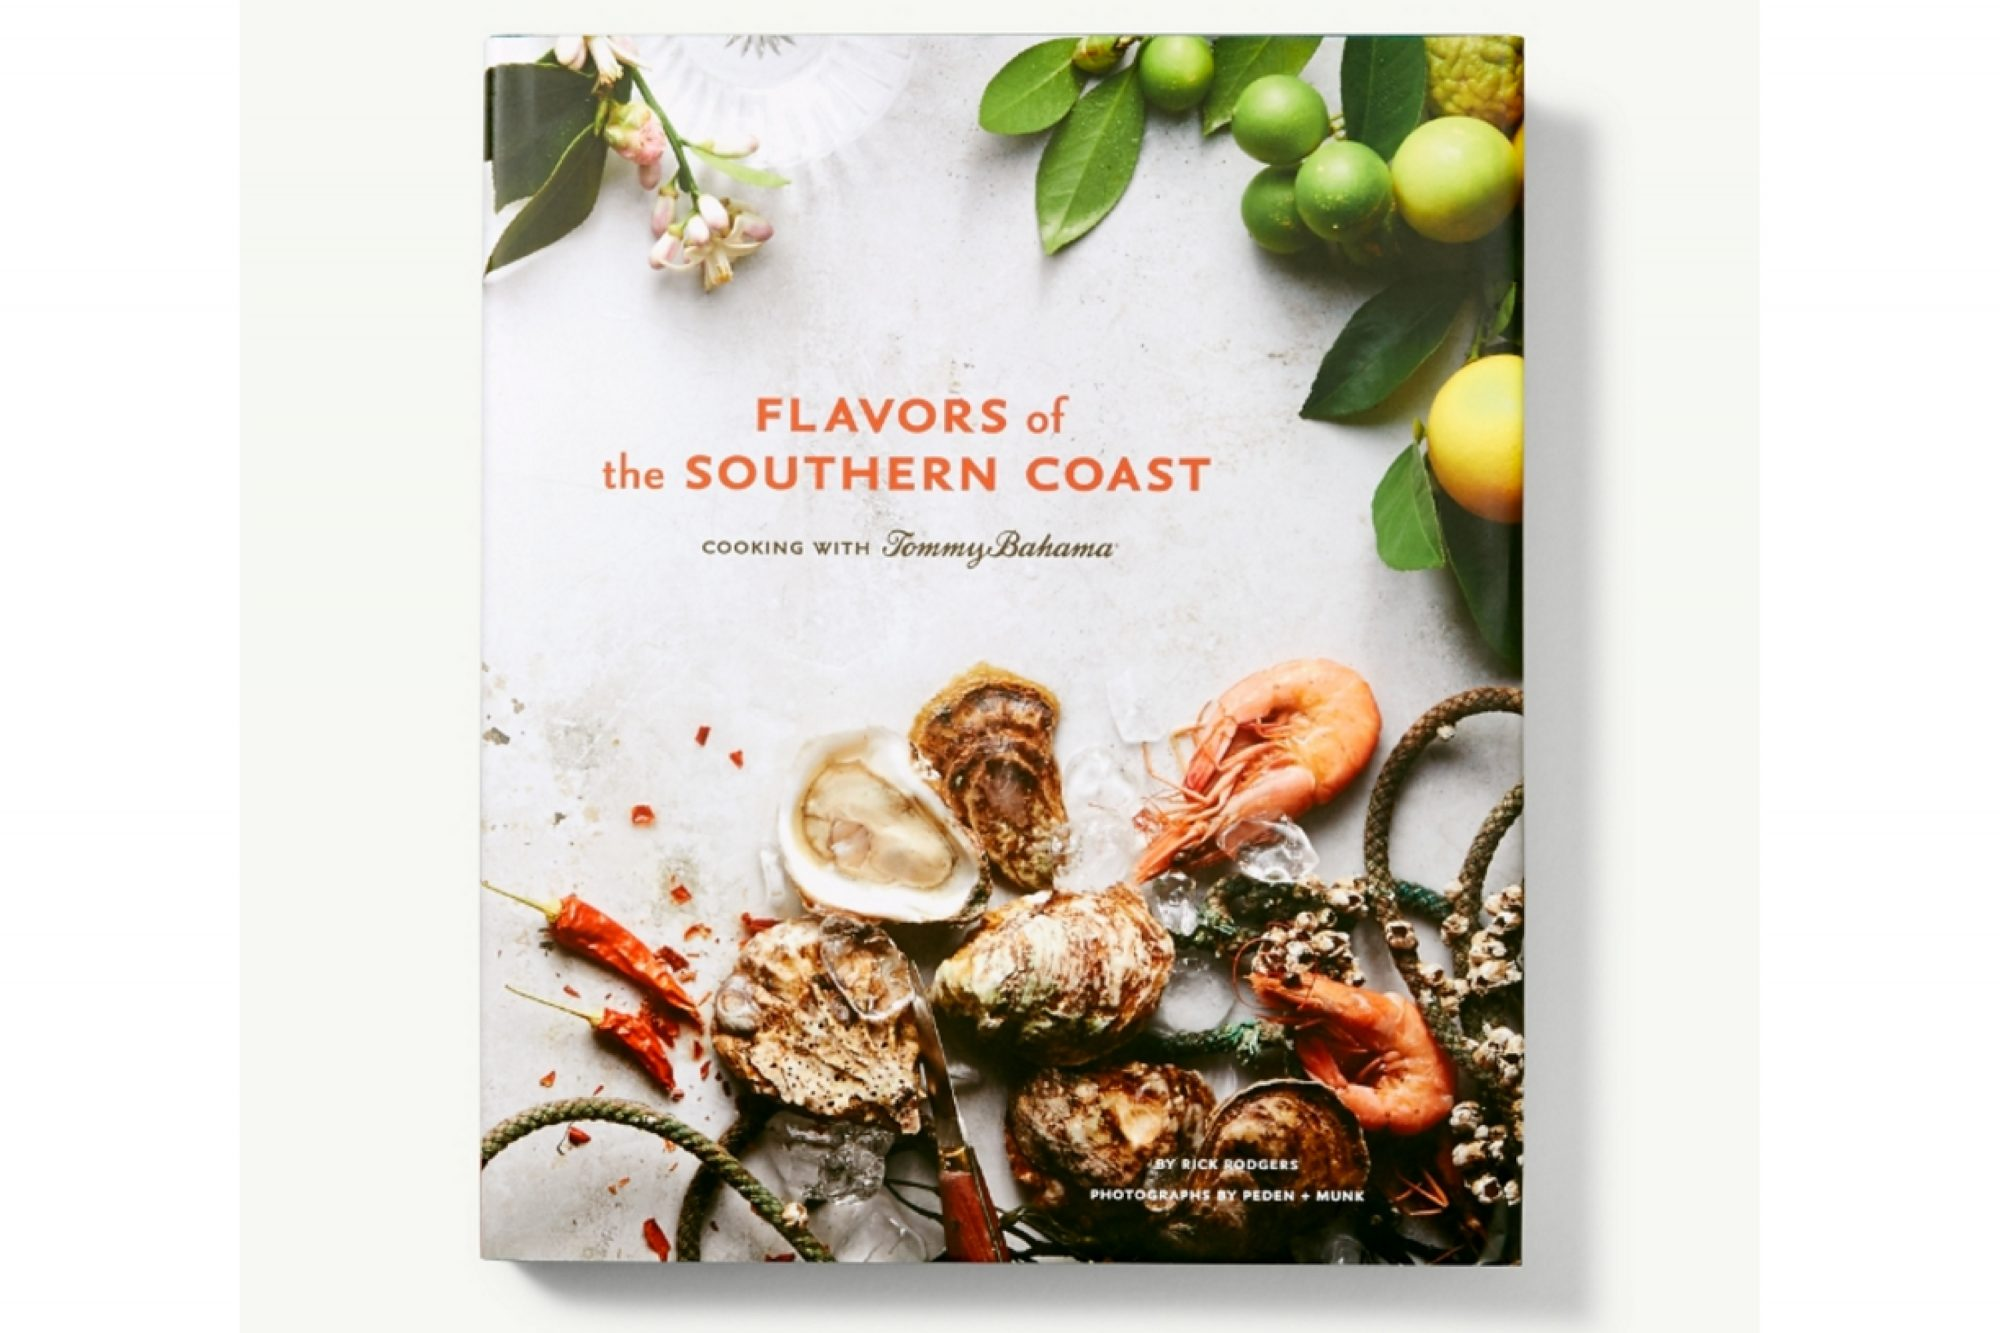 Flavors of the Southern Coast Cookbook